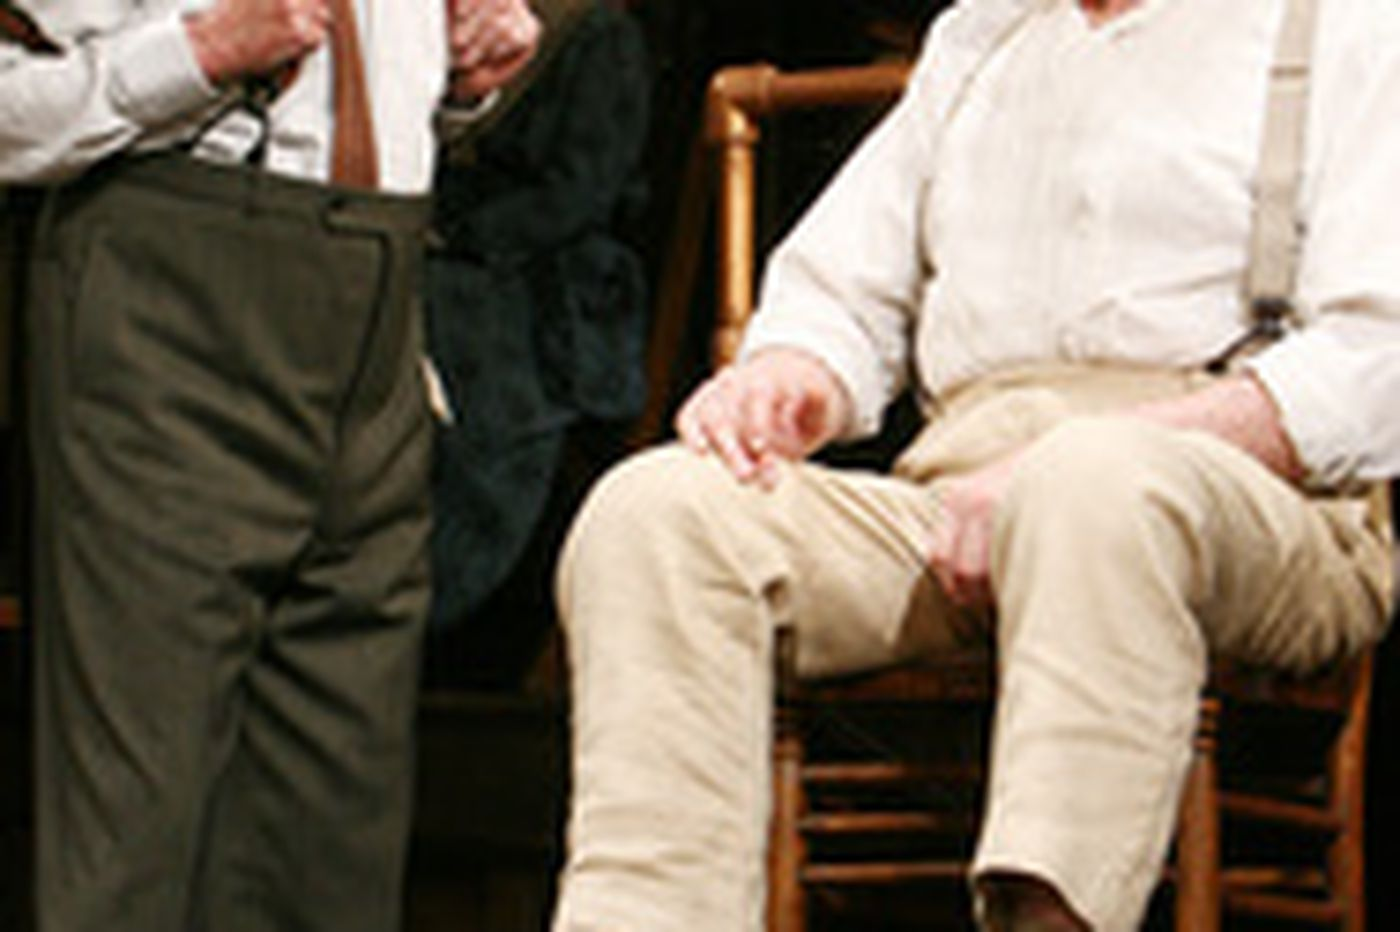 'Inherit the Wind' succeeds on almost every score